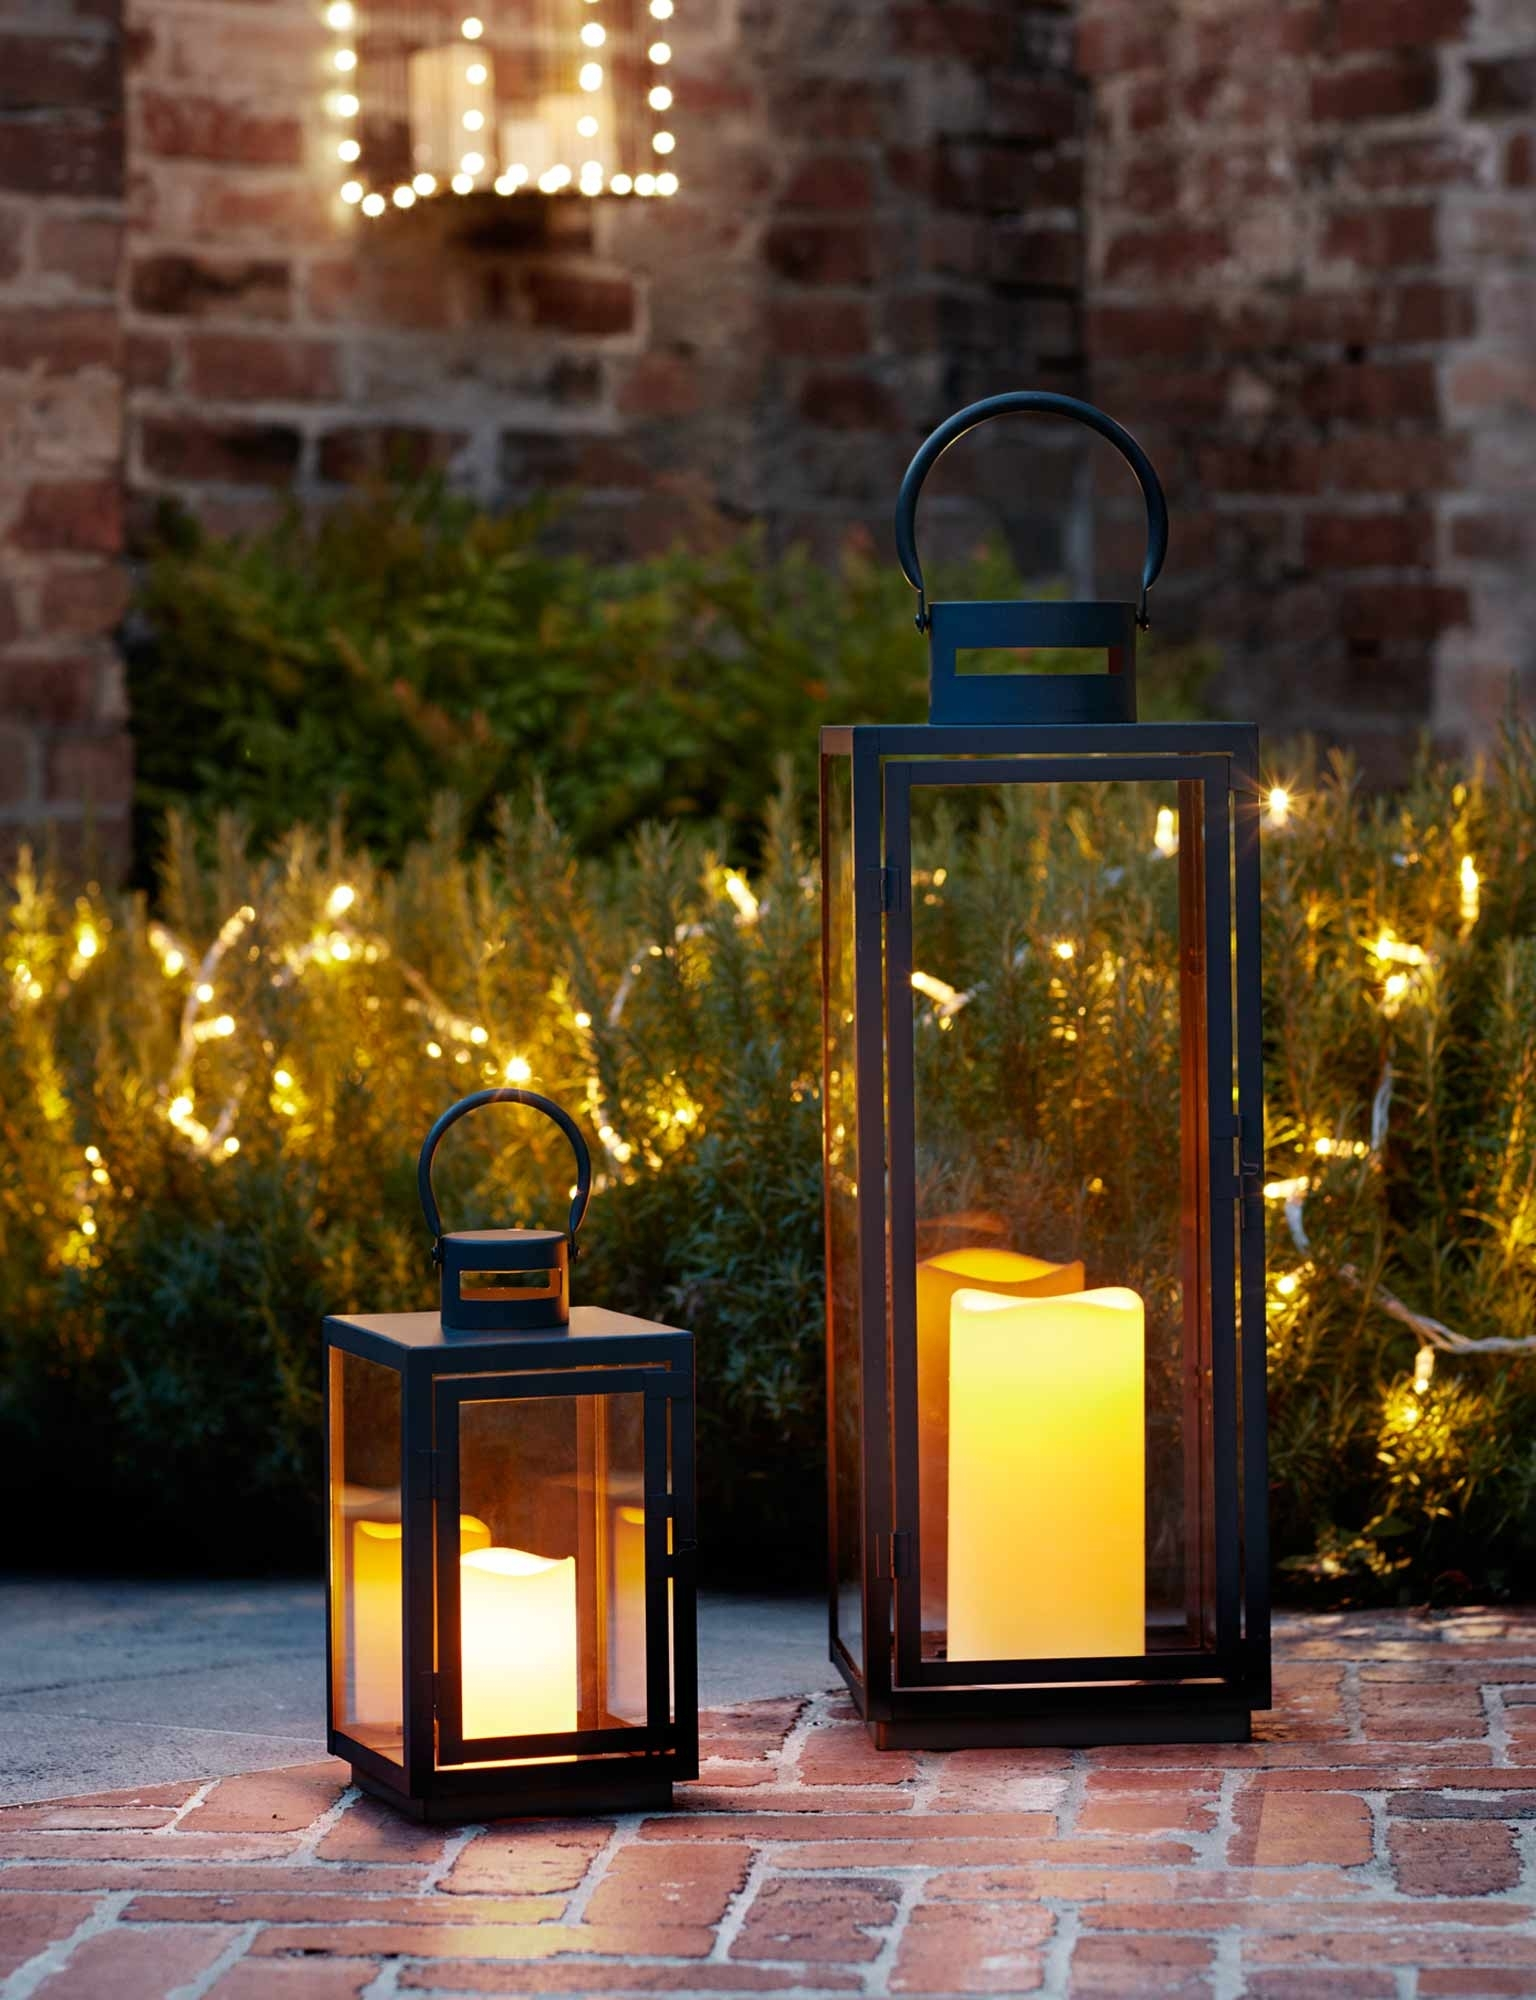 Garden Lighting Ideas | Inspiration | Lights4Fun.co.uk in Outdoor Lanterns On Stands (Image 3 of 20)